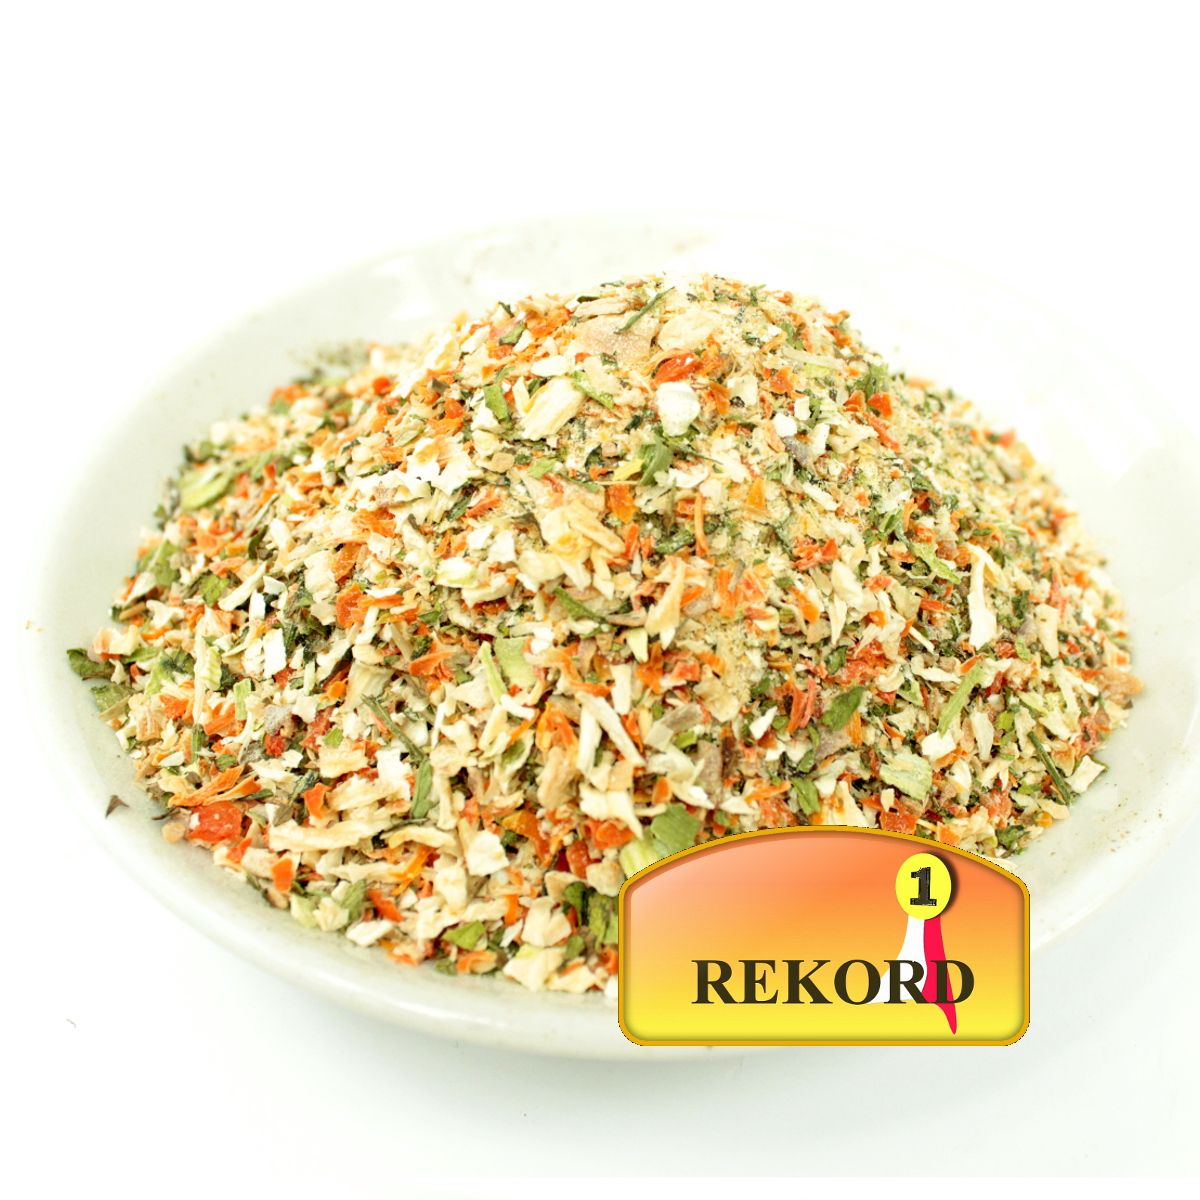 Dried Vegetables mix - parsnip, carrot, leek, onion, parsley